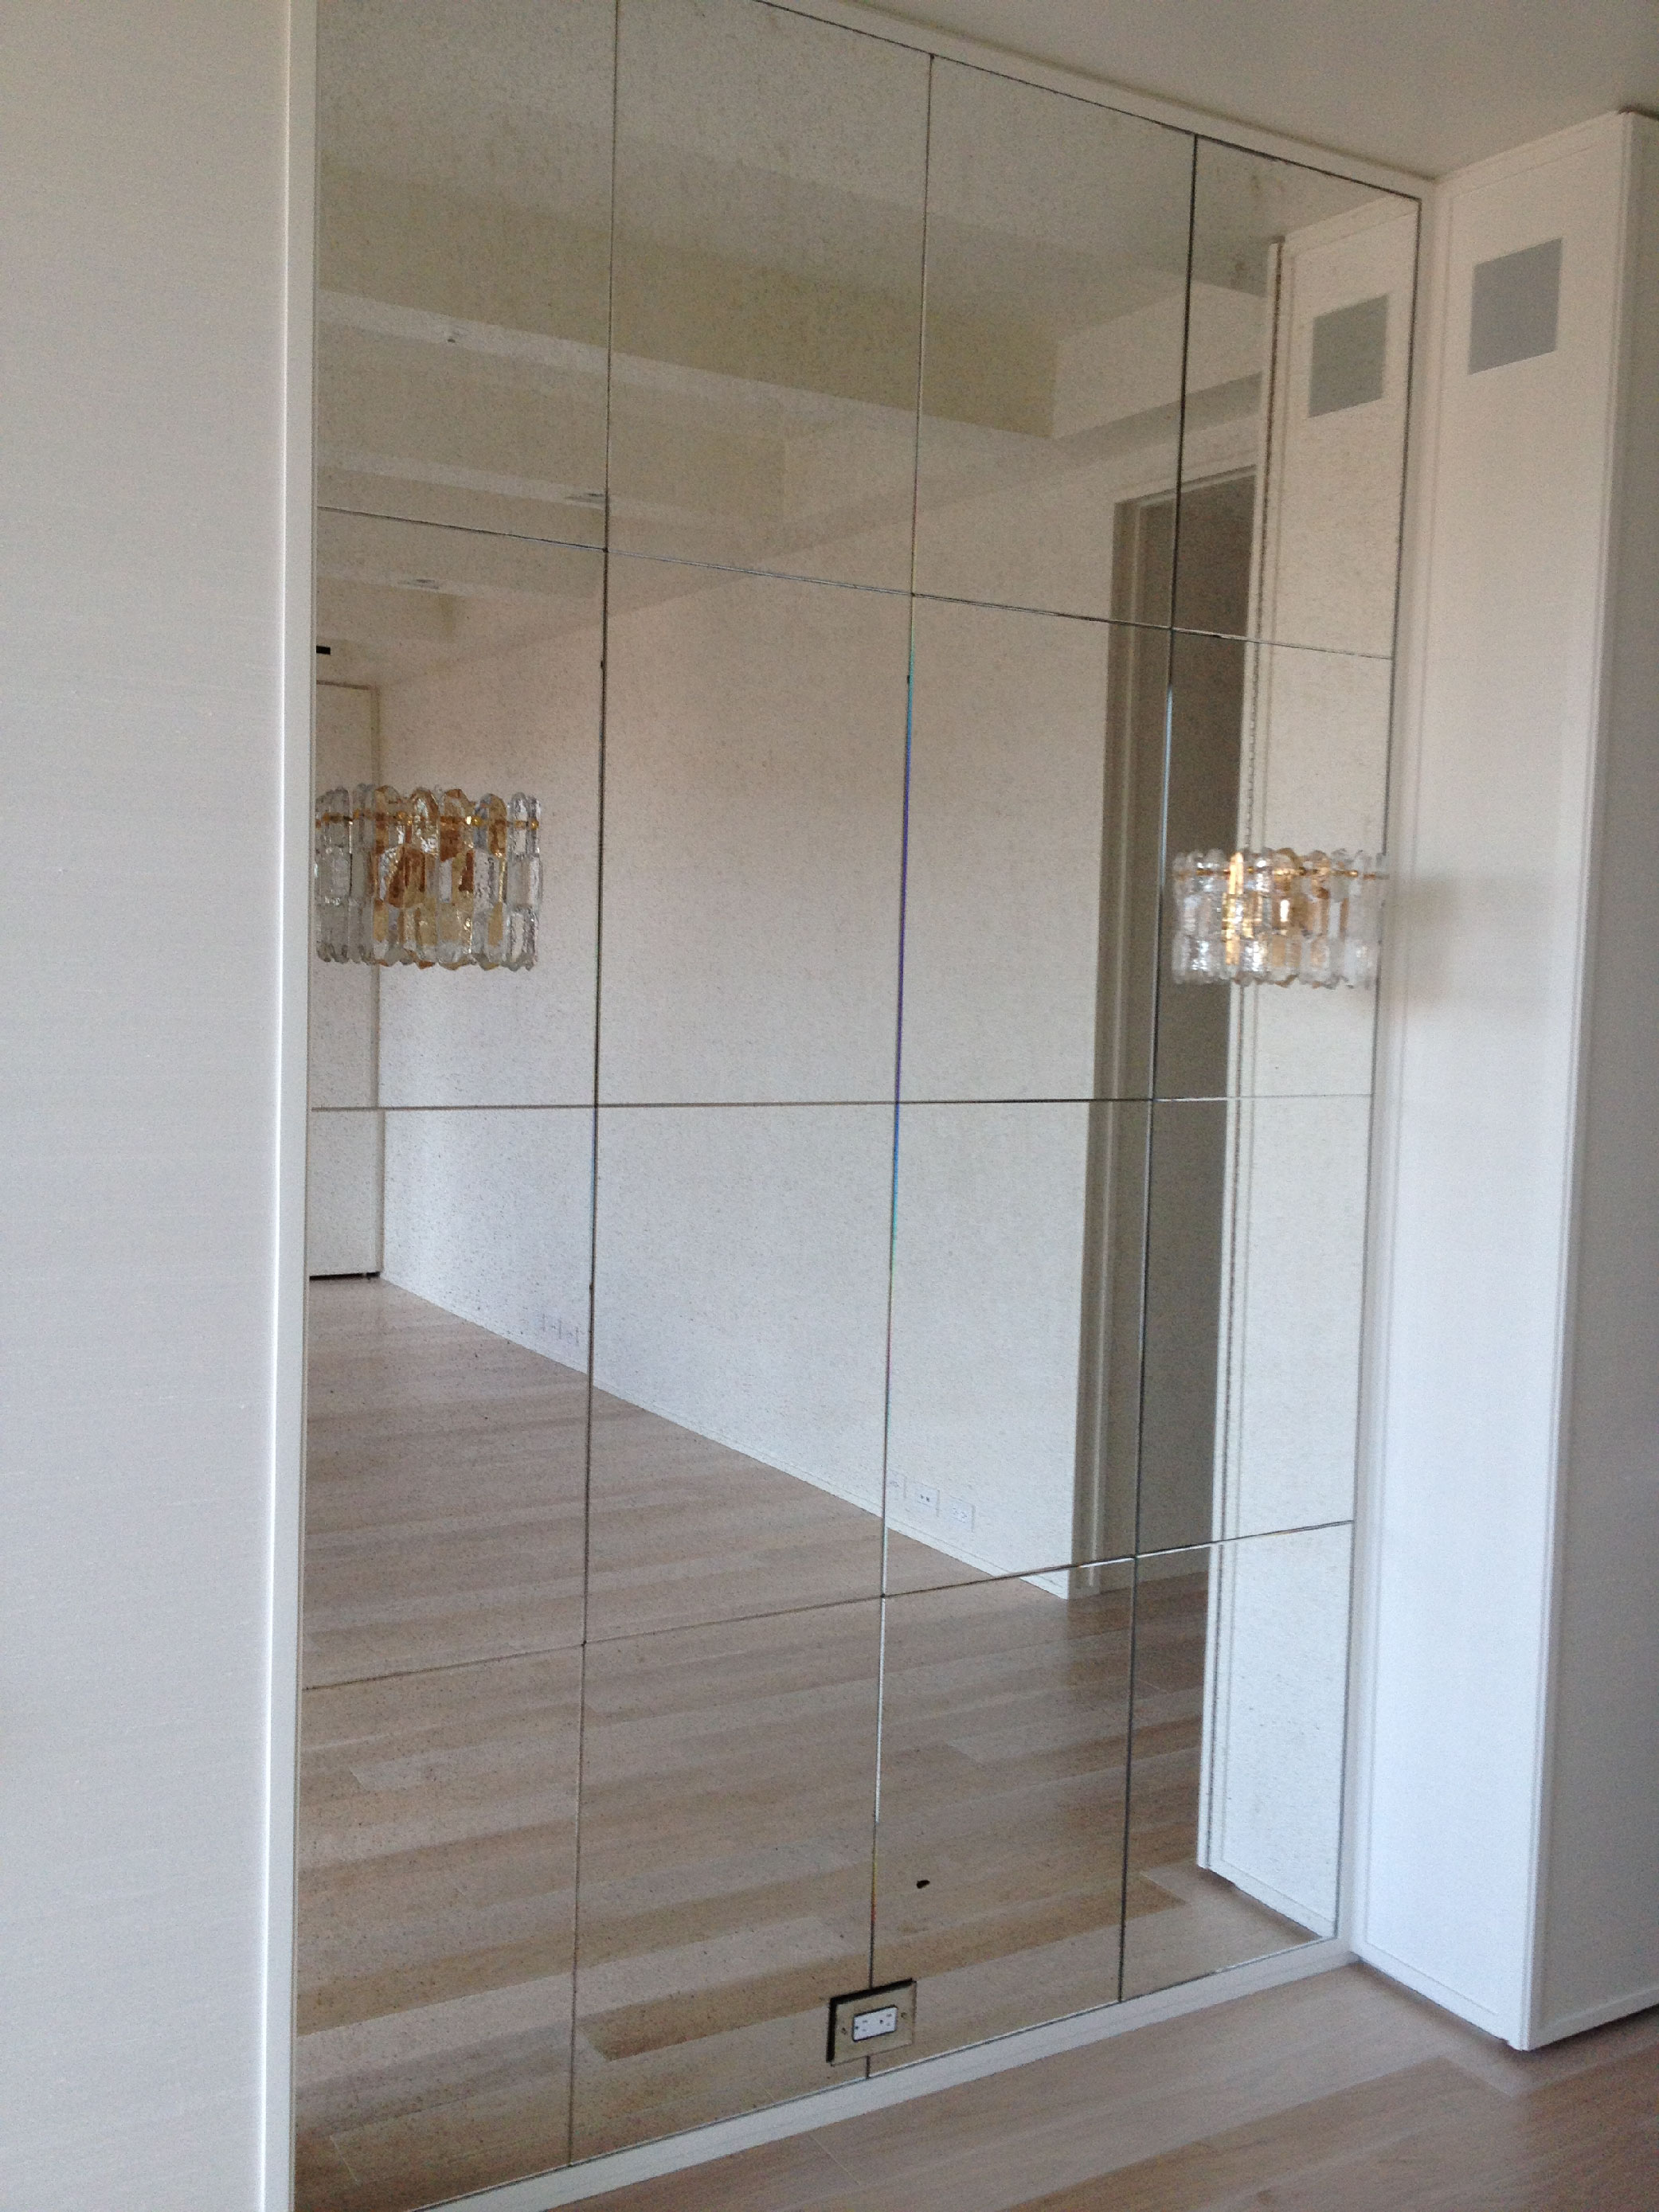 Different Shaped Mirrors custom mirrors - glass & mirror blog